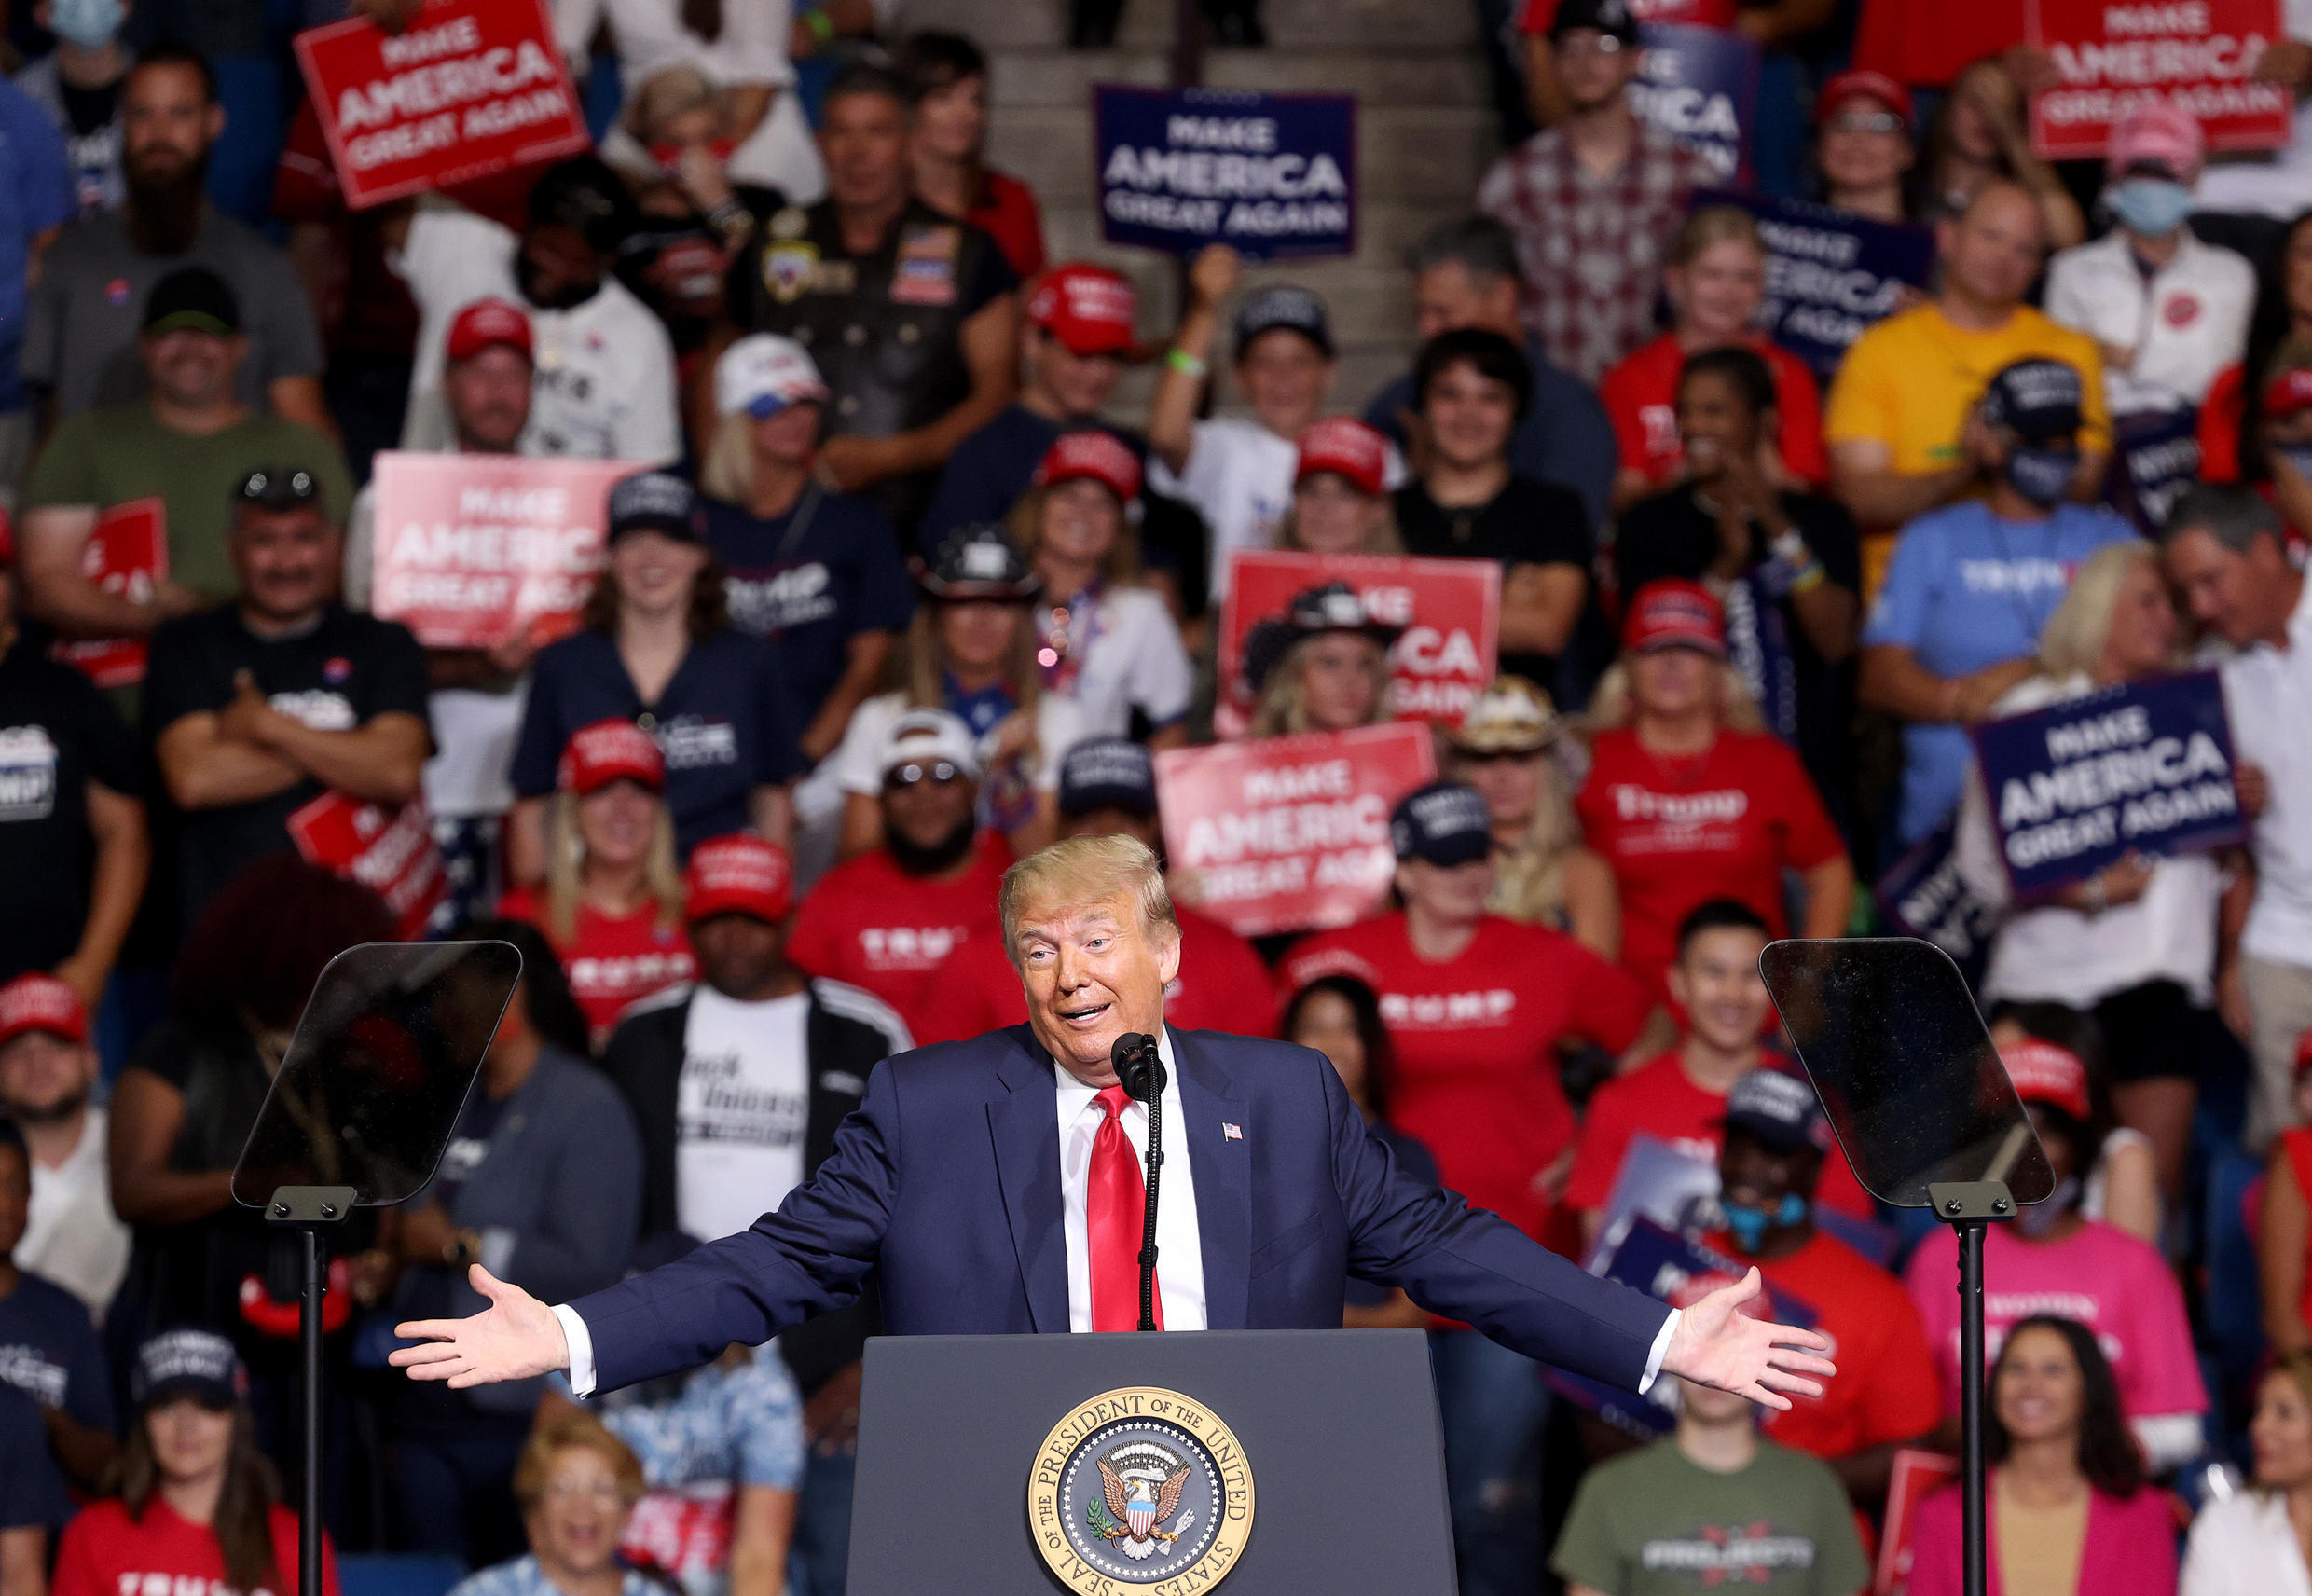 The US president during a campaign rally in Tulsa on June 20, 2020.